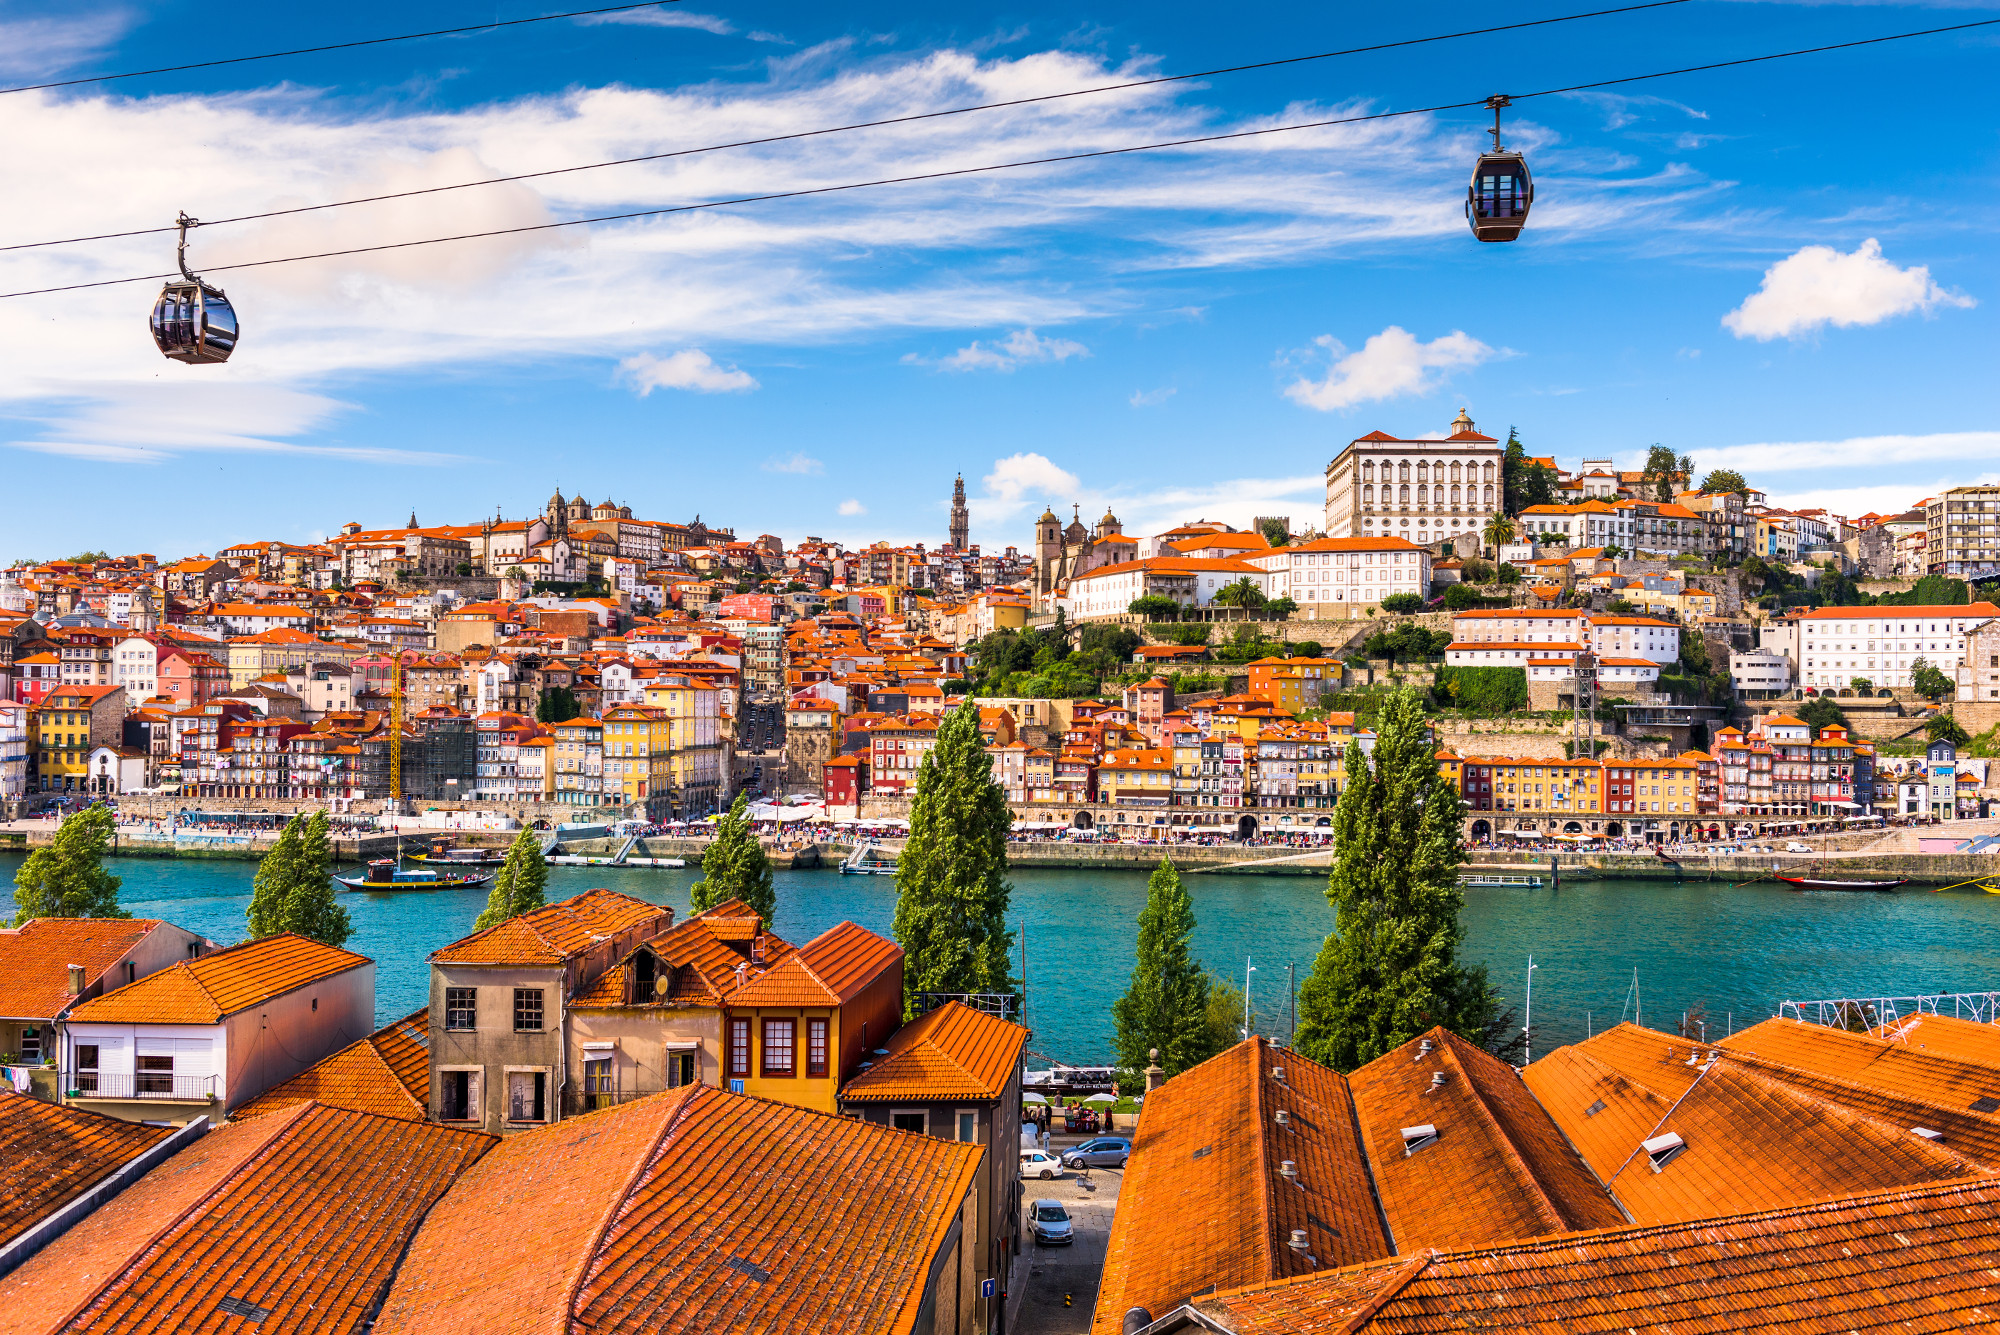 Porto took the second position in the index, coming out as most liveable place in the world.